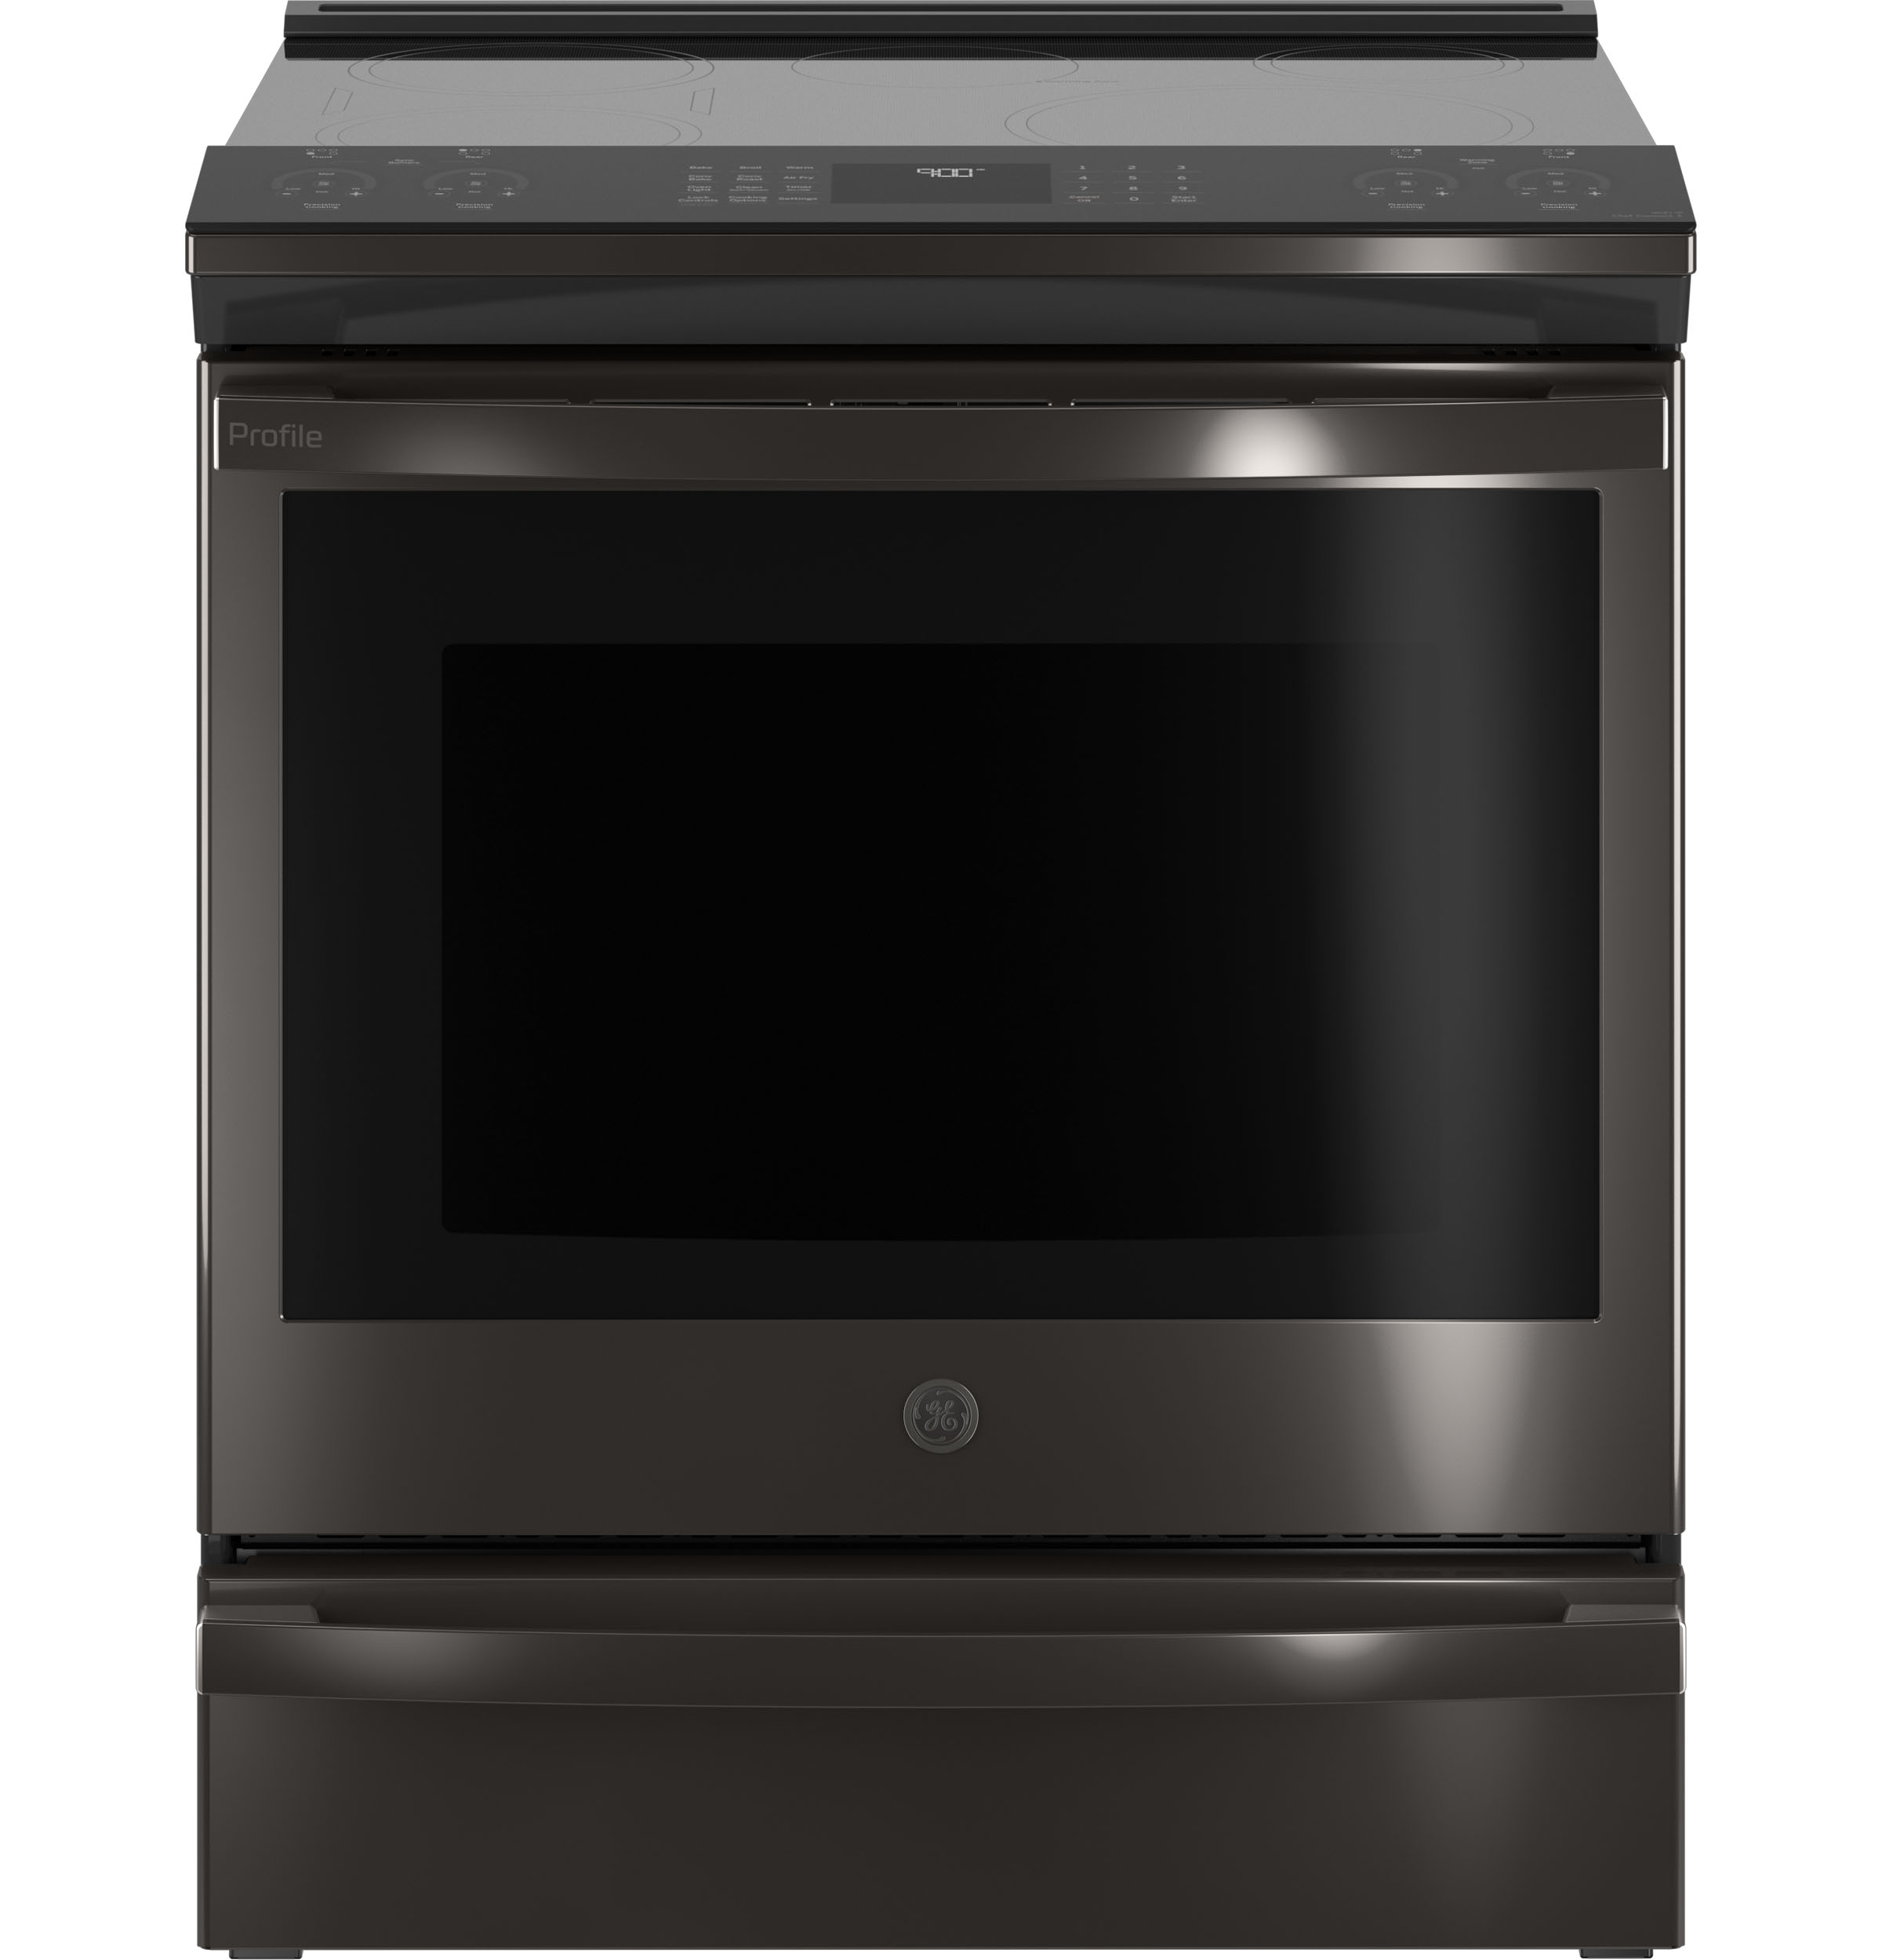 "GE Profile GE Profile™ 30"" Smart Slide-In Front-Control Induction and Convection Range with No Preheat Air Fry"